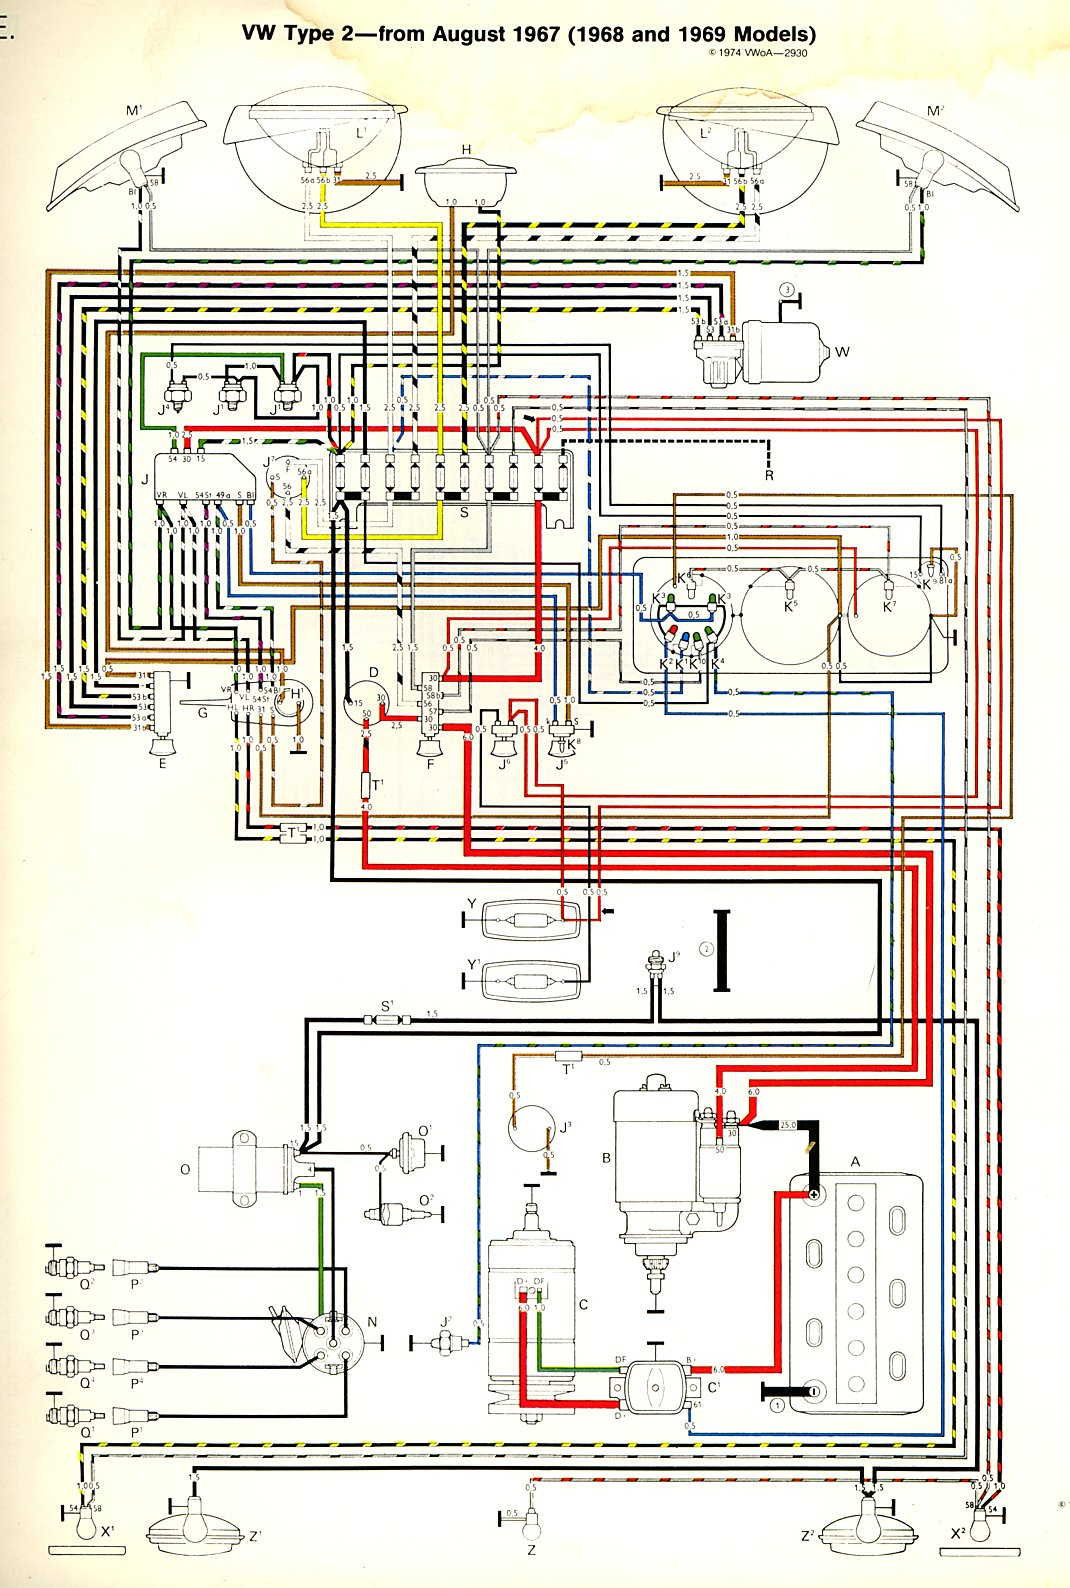 baybus_6869a 1968 69 bus wiring diagram thegoldenbug com 72 vw bus wiring diagram at alyssarenee.co